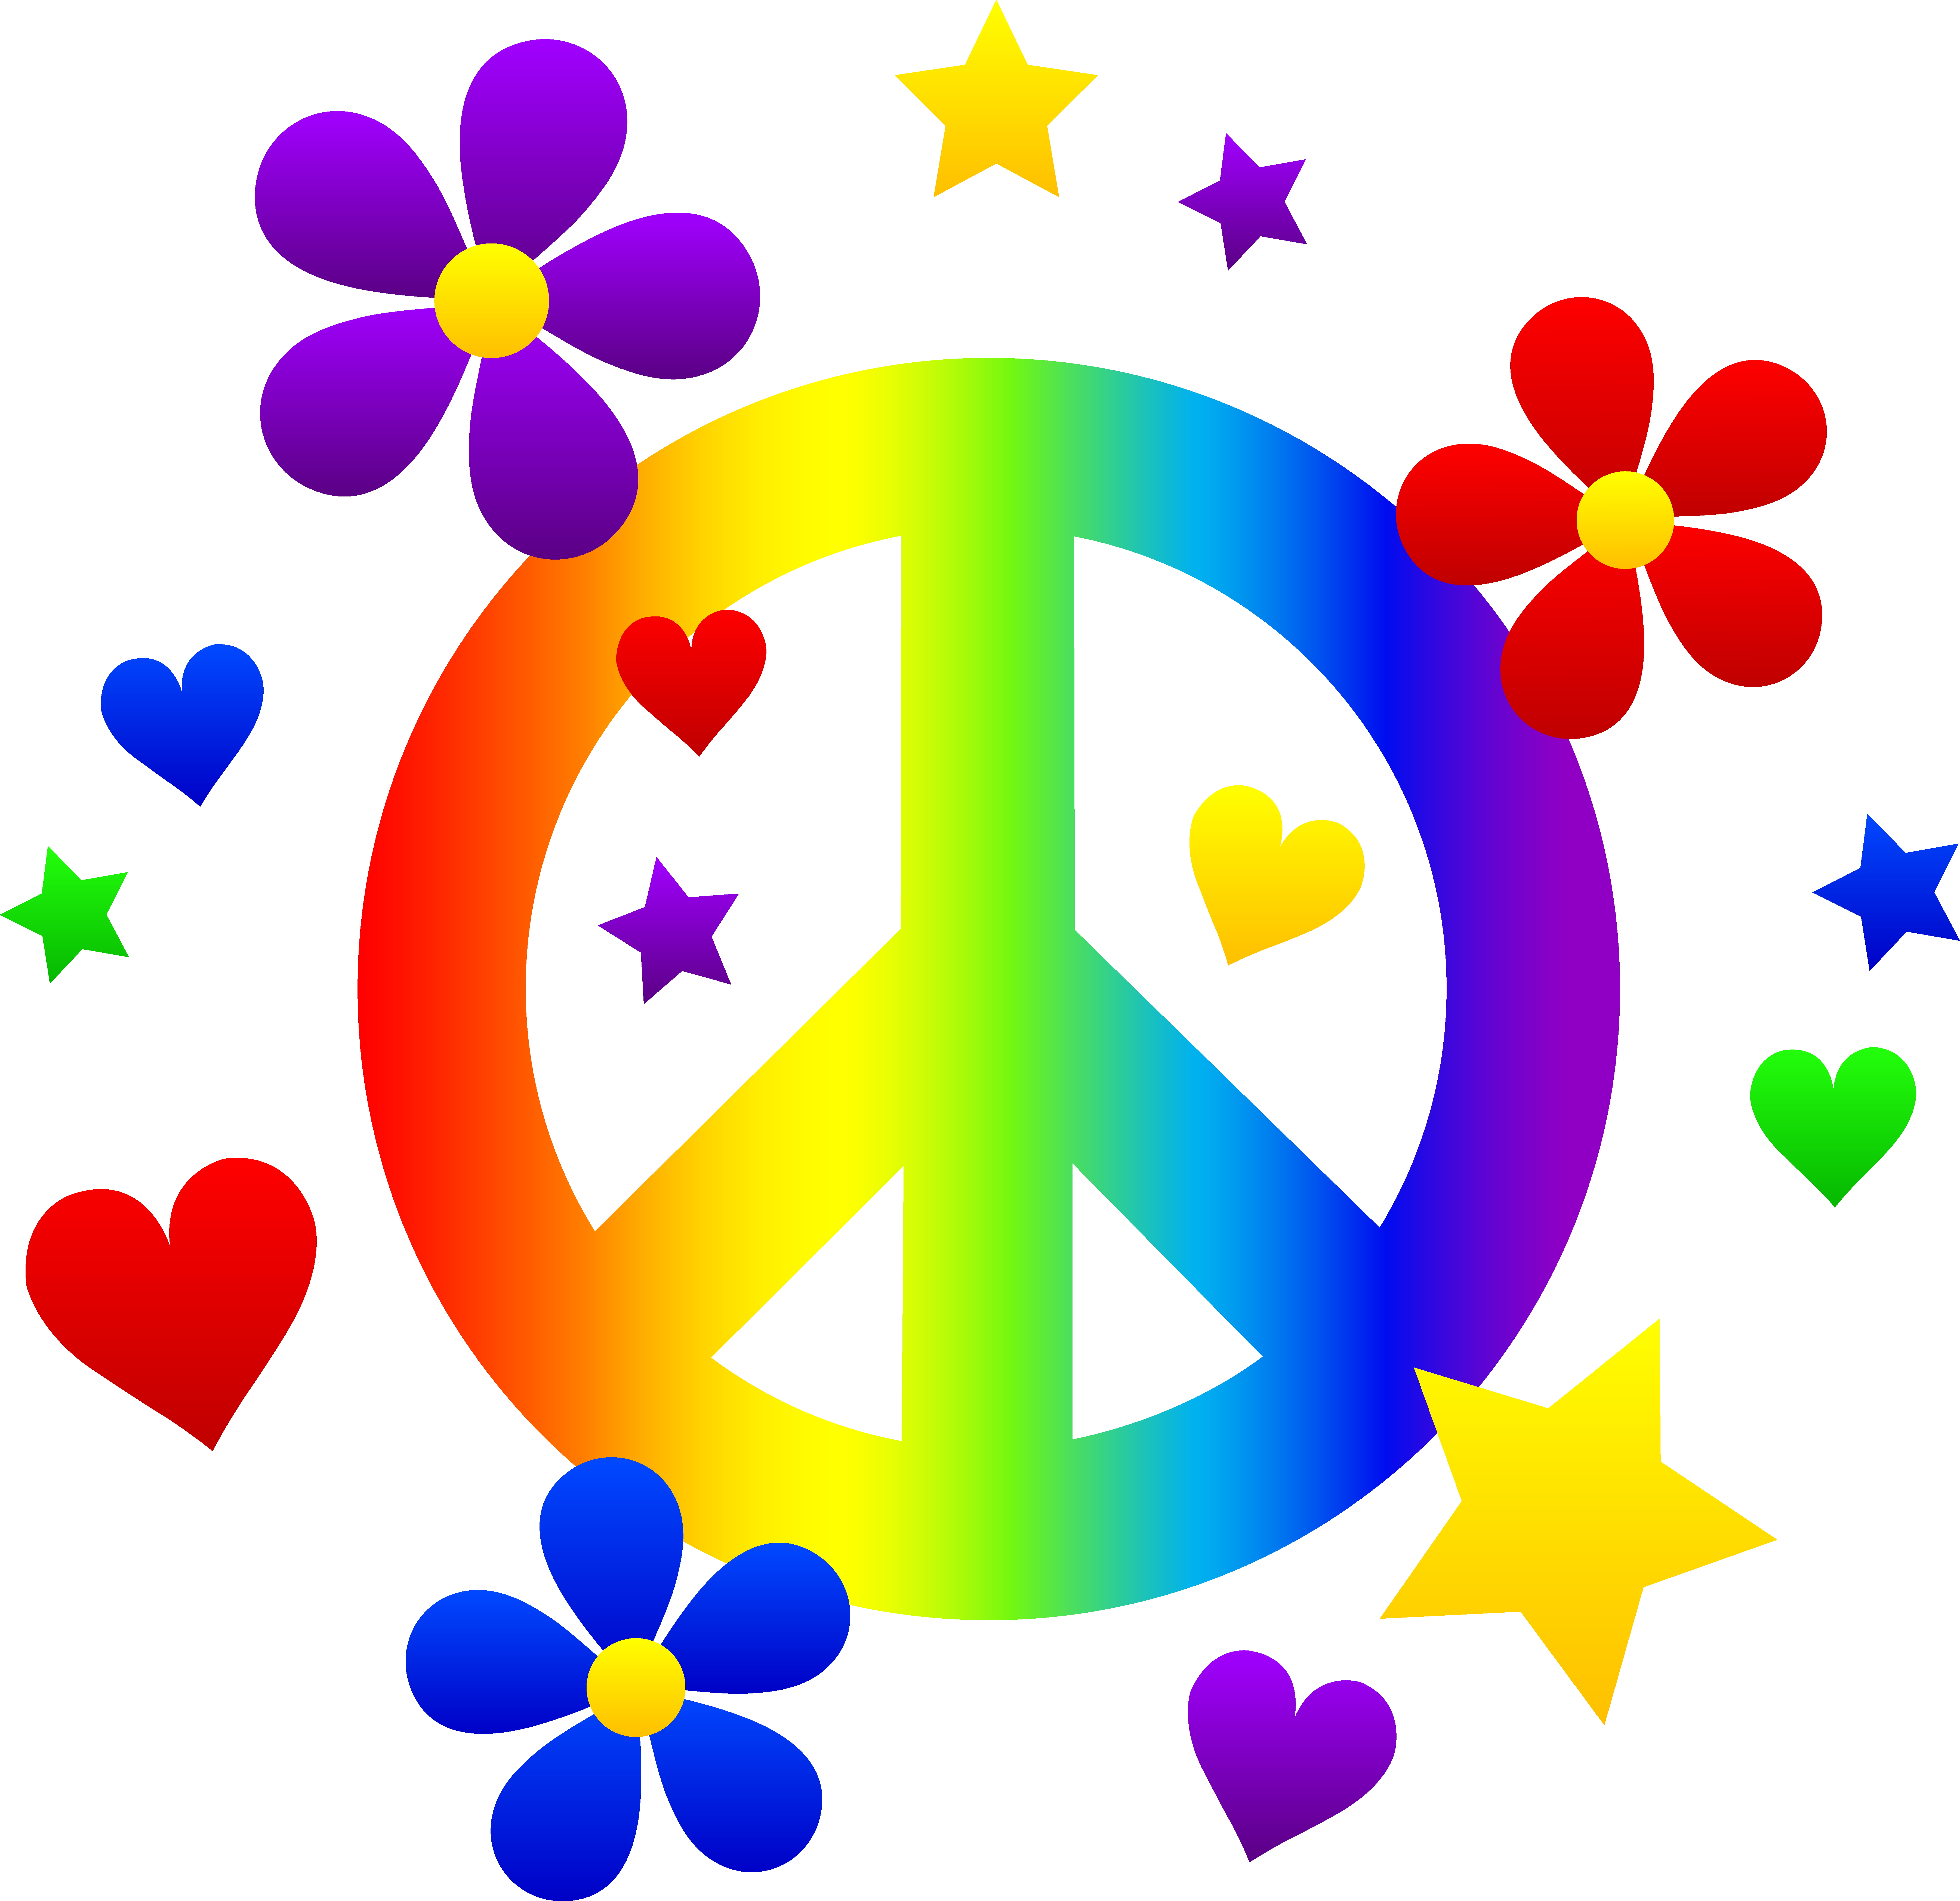 peace sign with flowers clipart #18